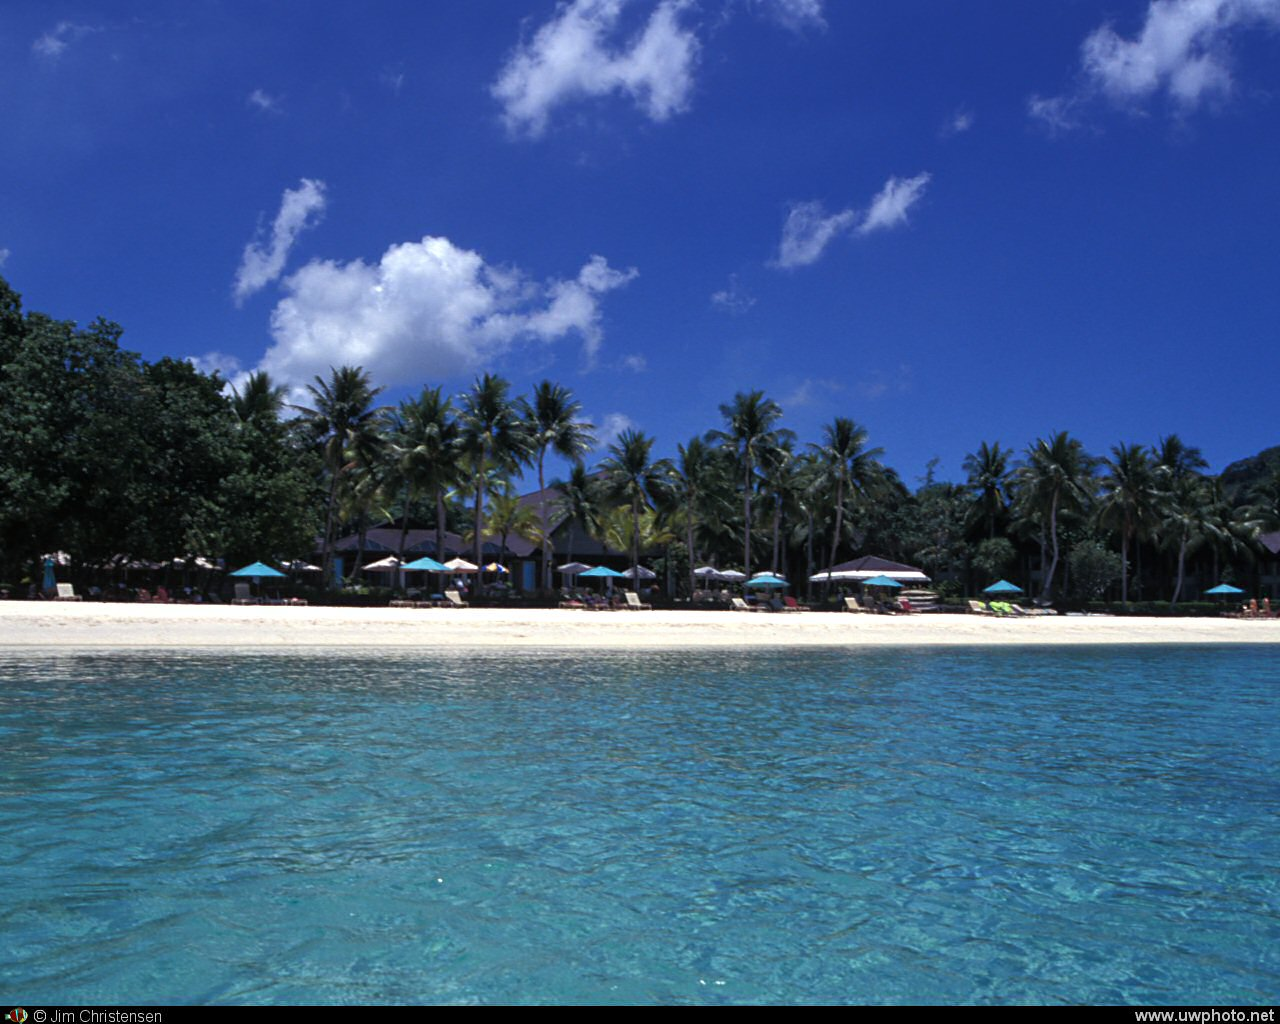 Afternoon The Palau Pacific Resort is located on a white sand beach 1280x1024